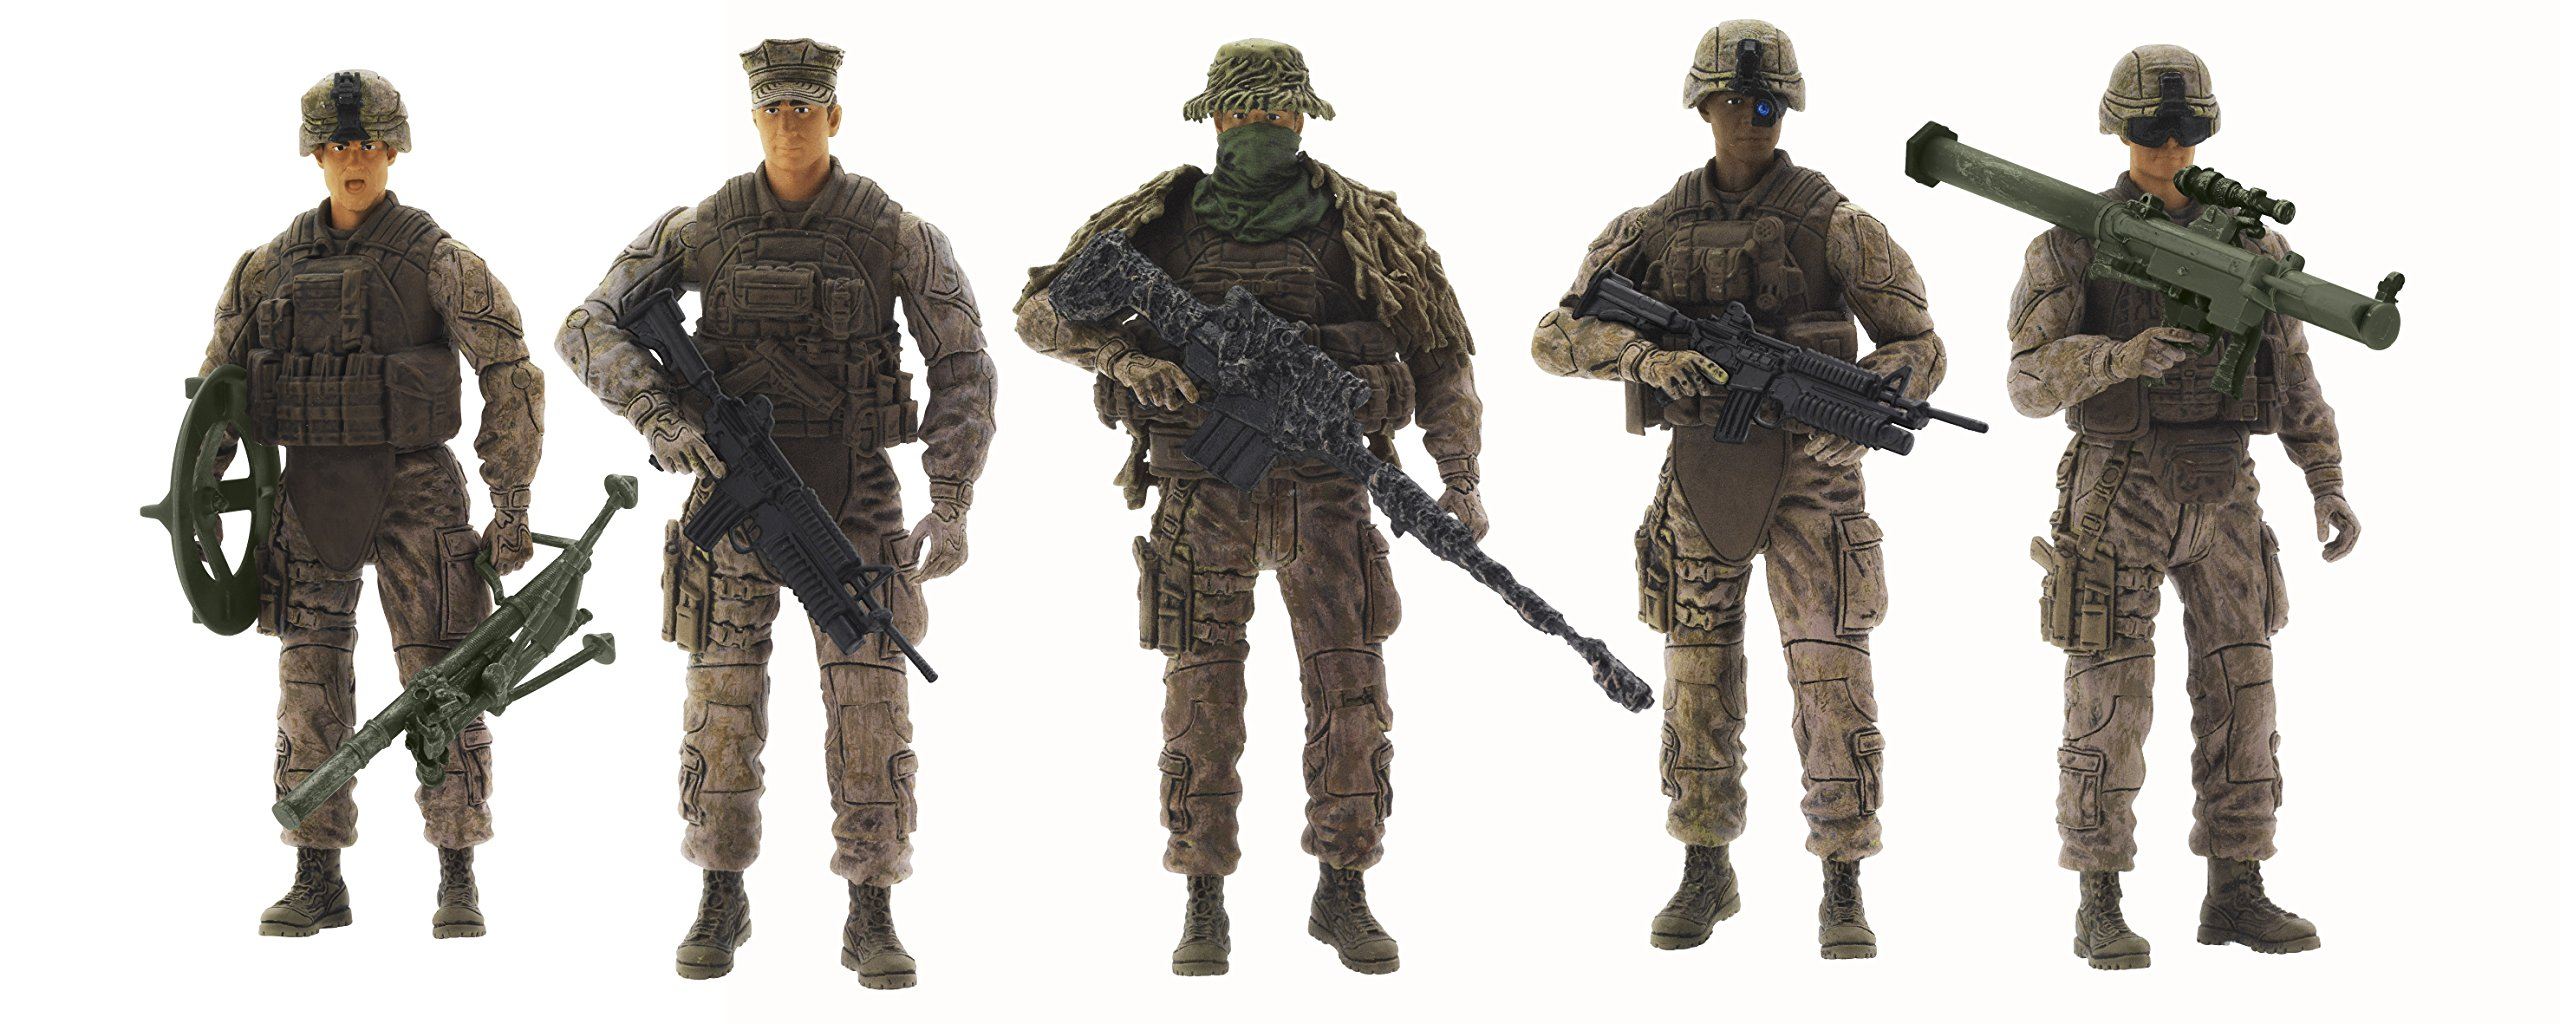 Elite Force 1 18 Toy : Marine action figures scale toy soldiers elite